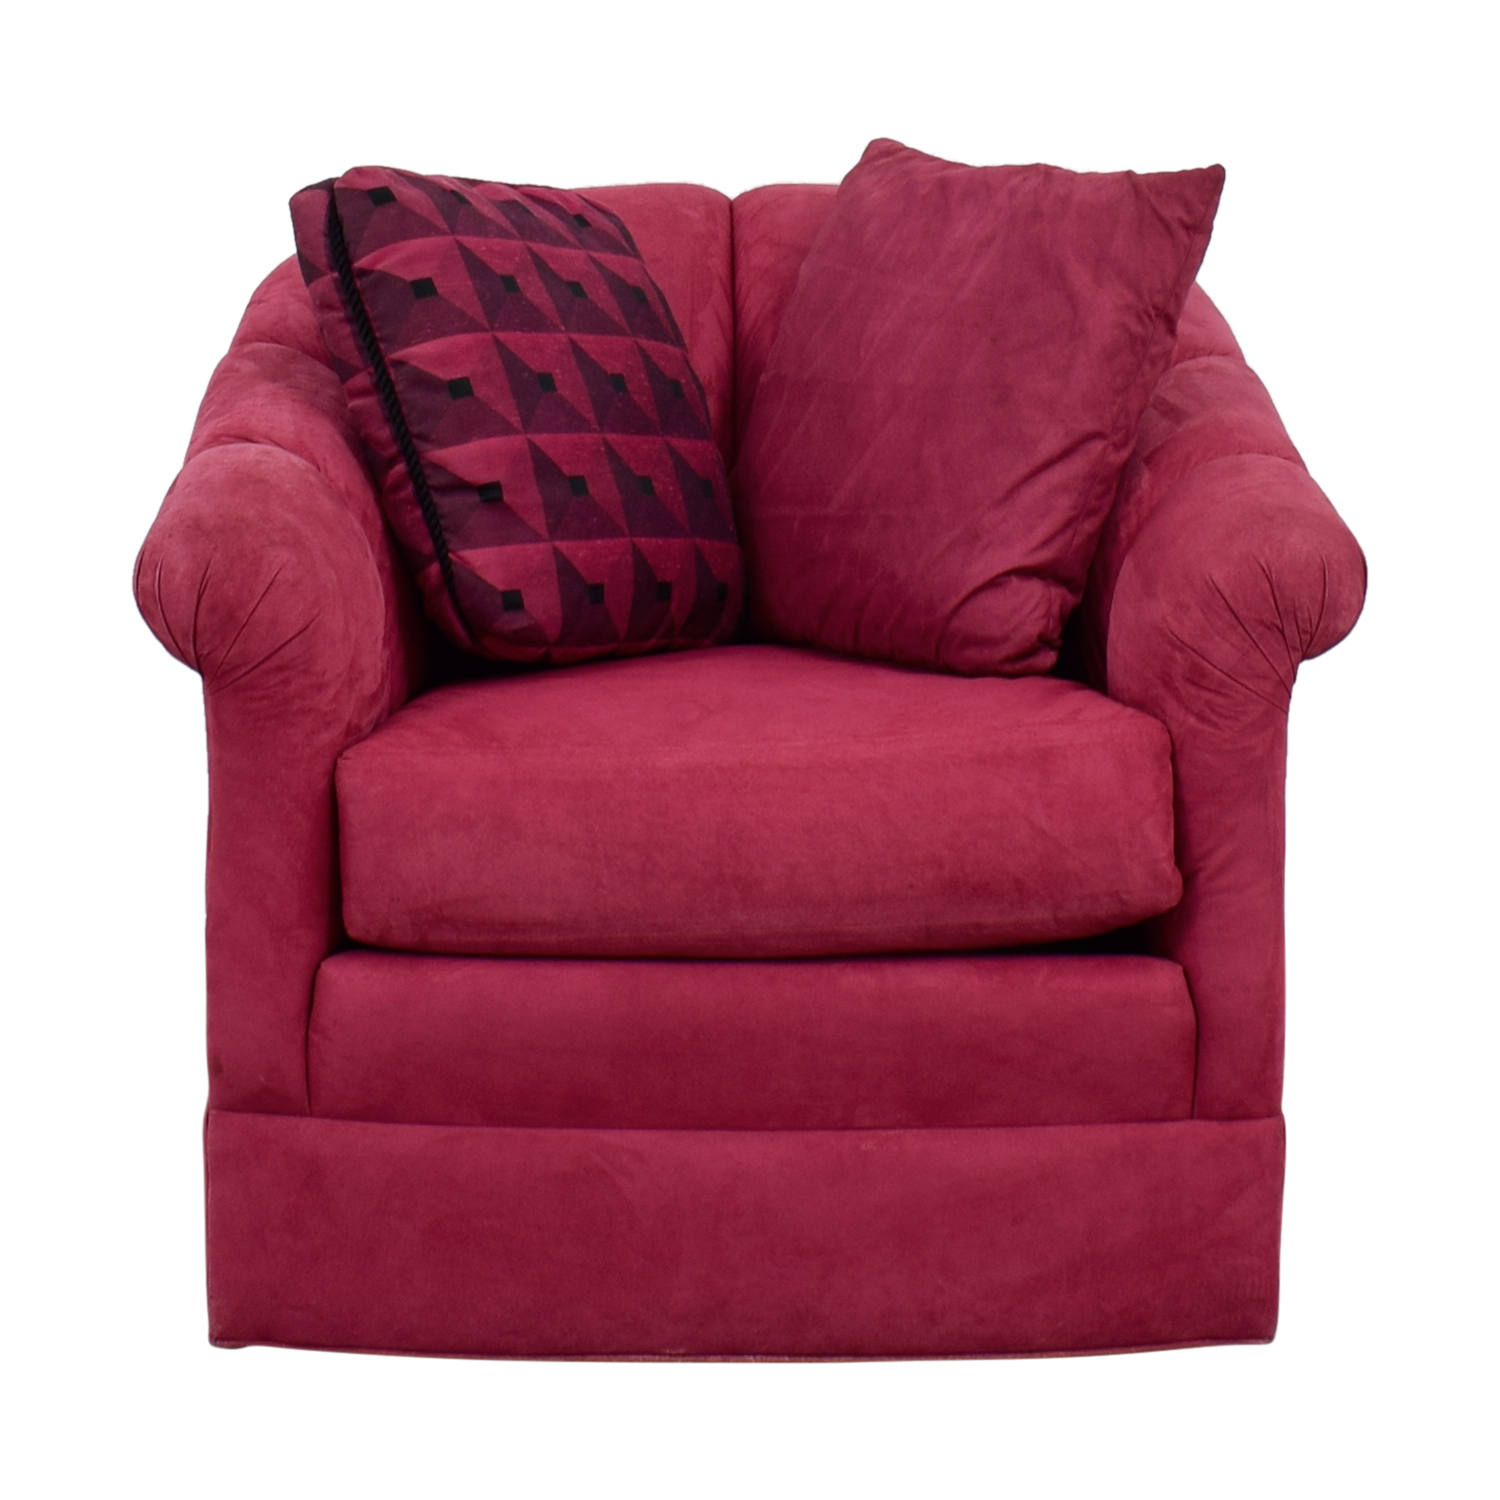 Astonishing 90 Off Magenta Curved Arm Accent Chair With Pillows Chairs Ibusinesslaw Wood Chair Design Ideas Ibusinesslaworg